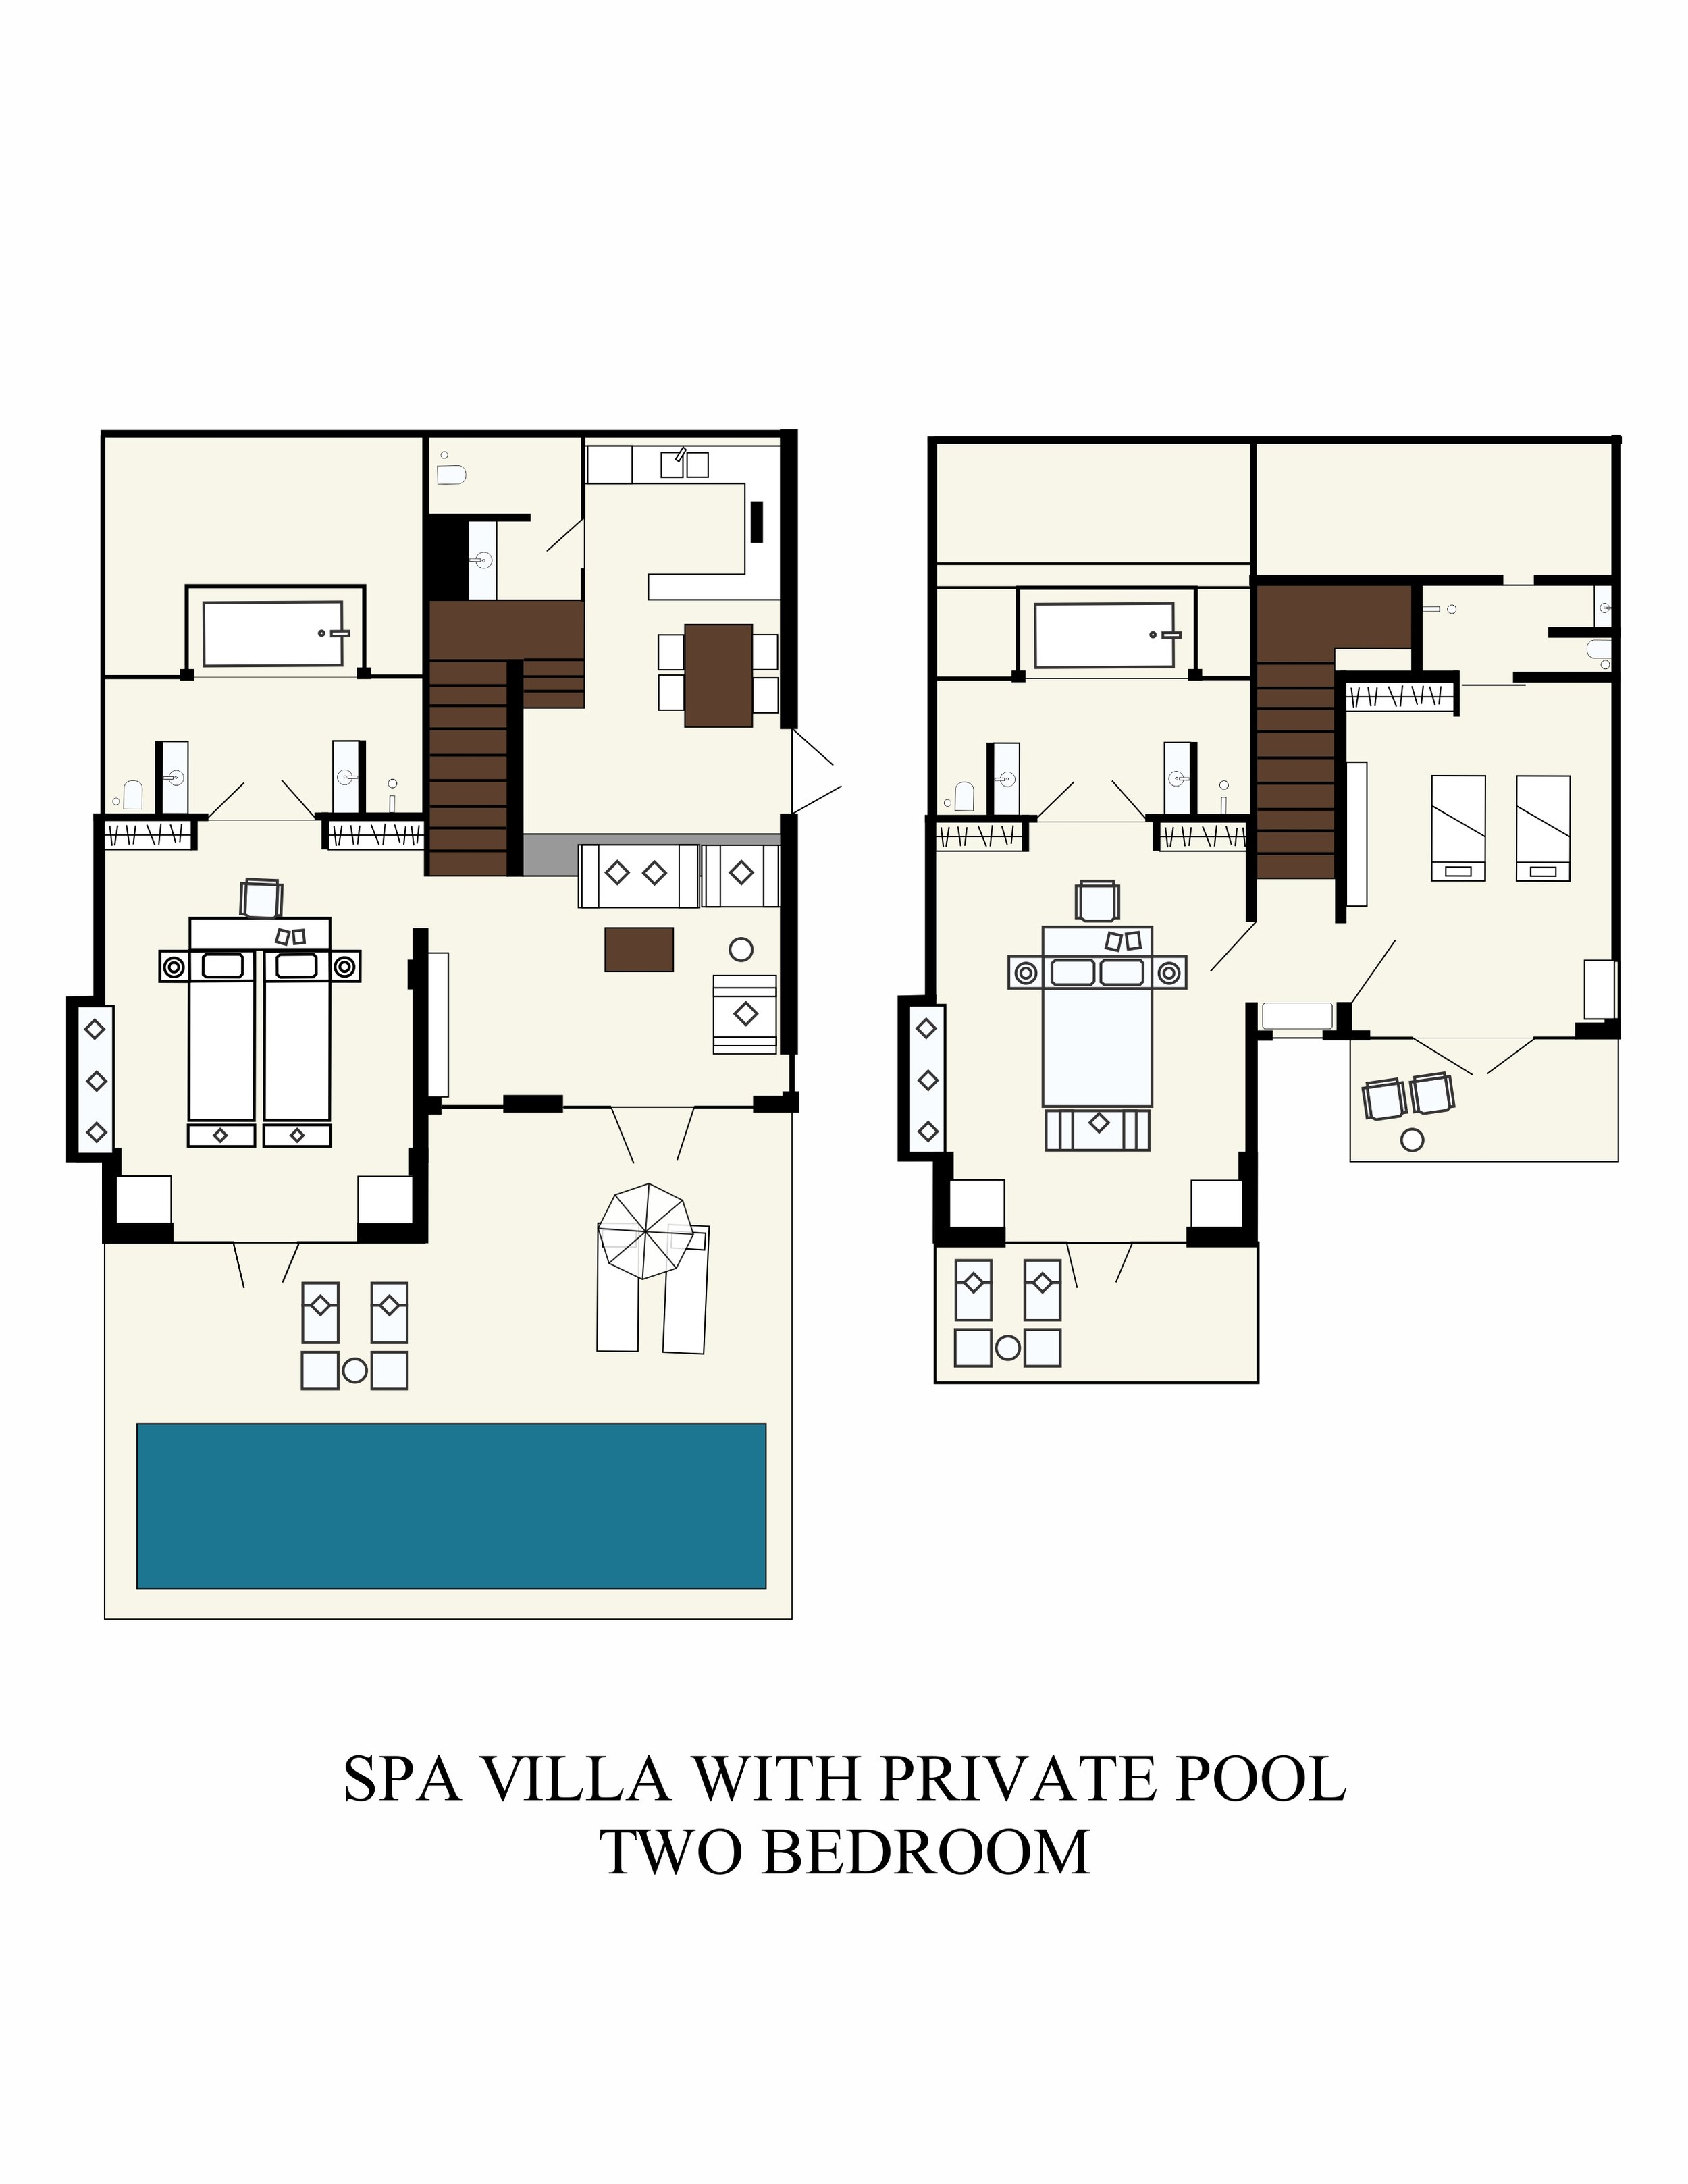 Spa Villa with Private Pool Two Bedroom.jpg